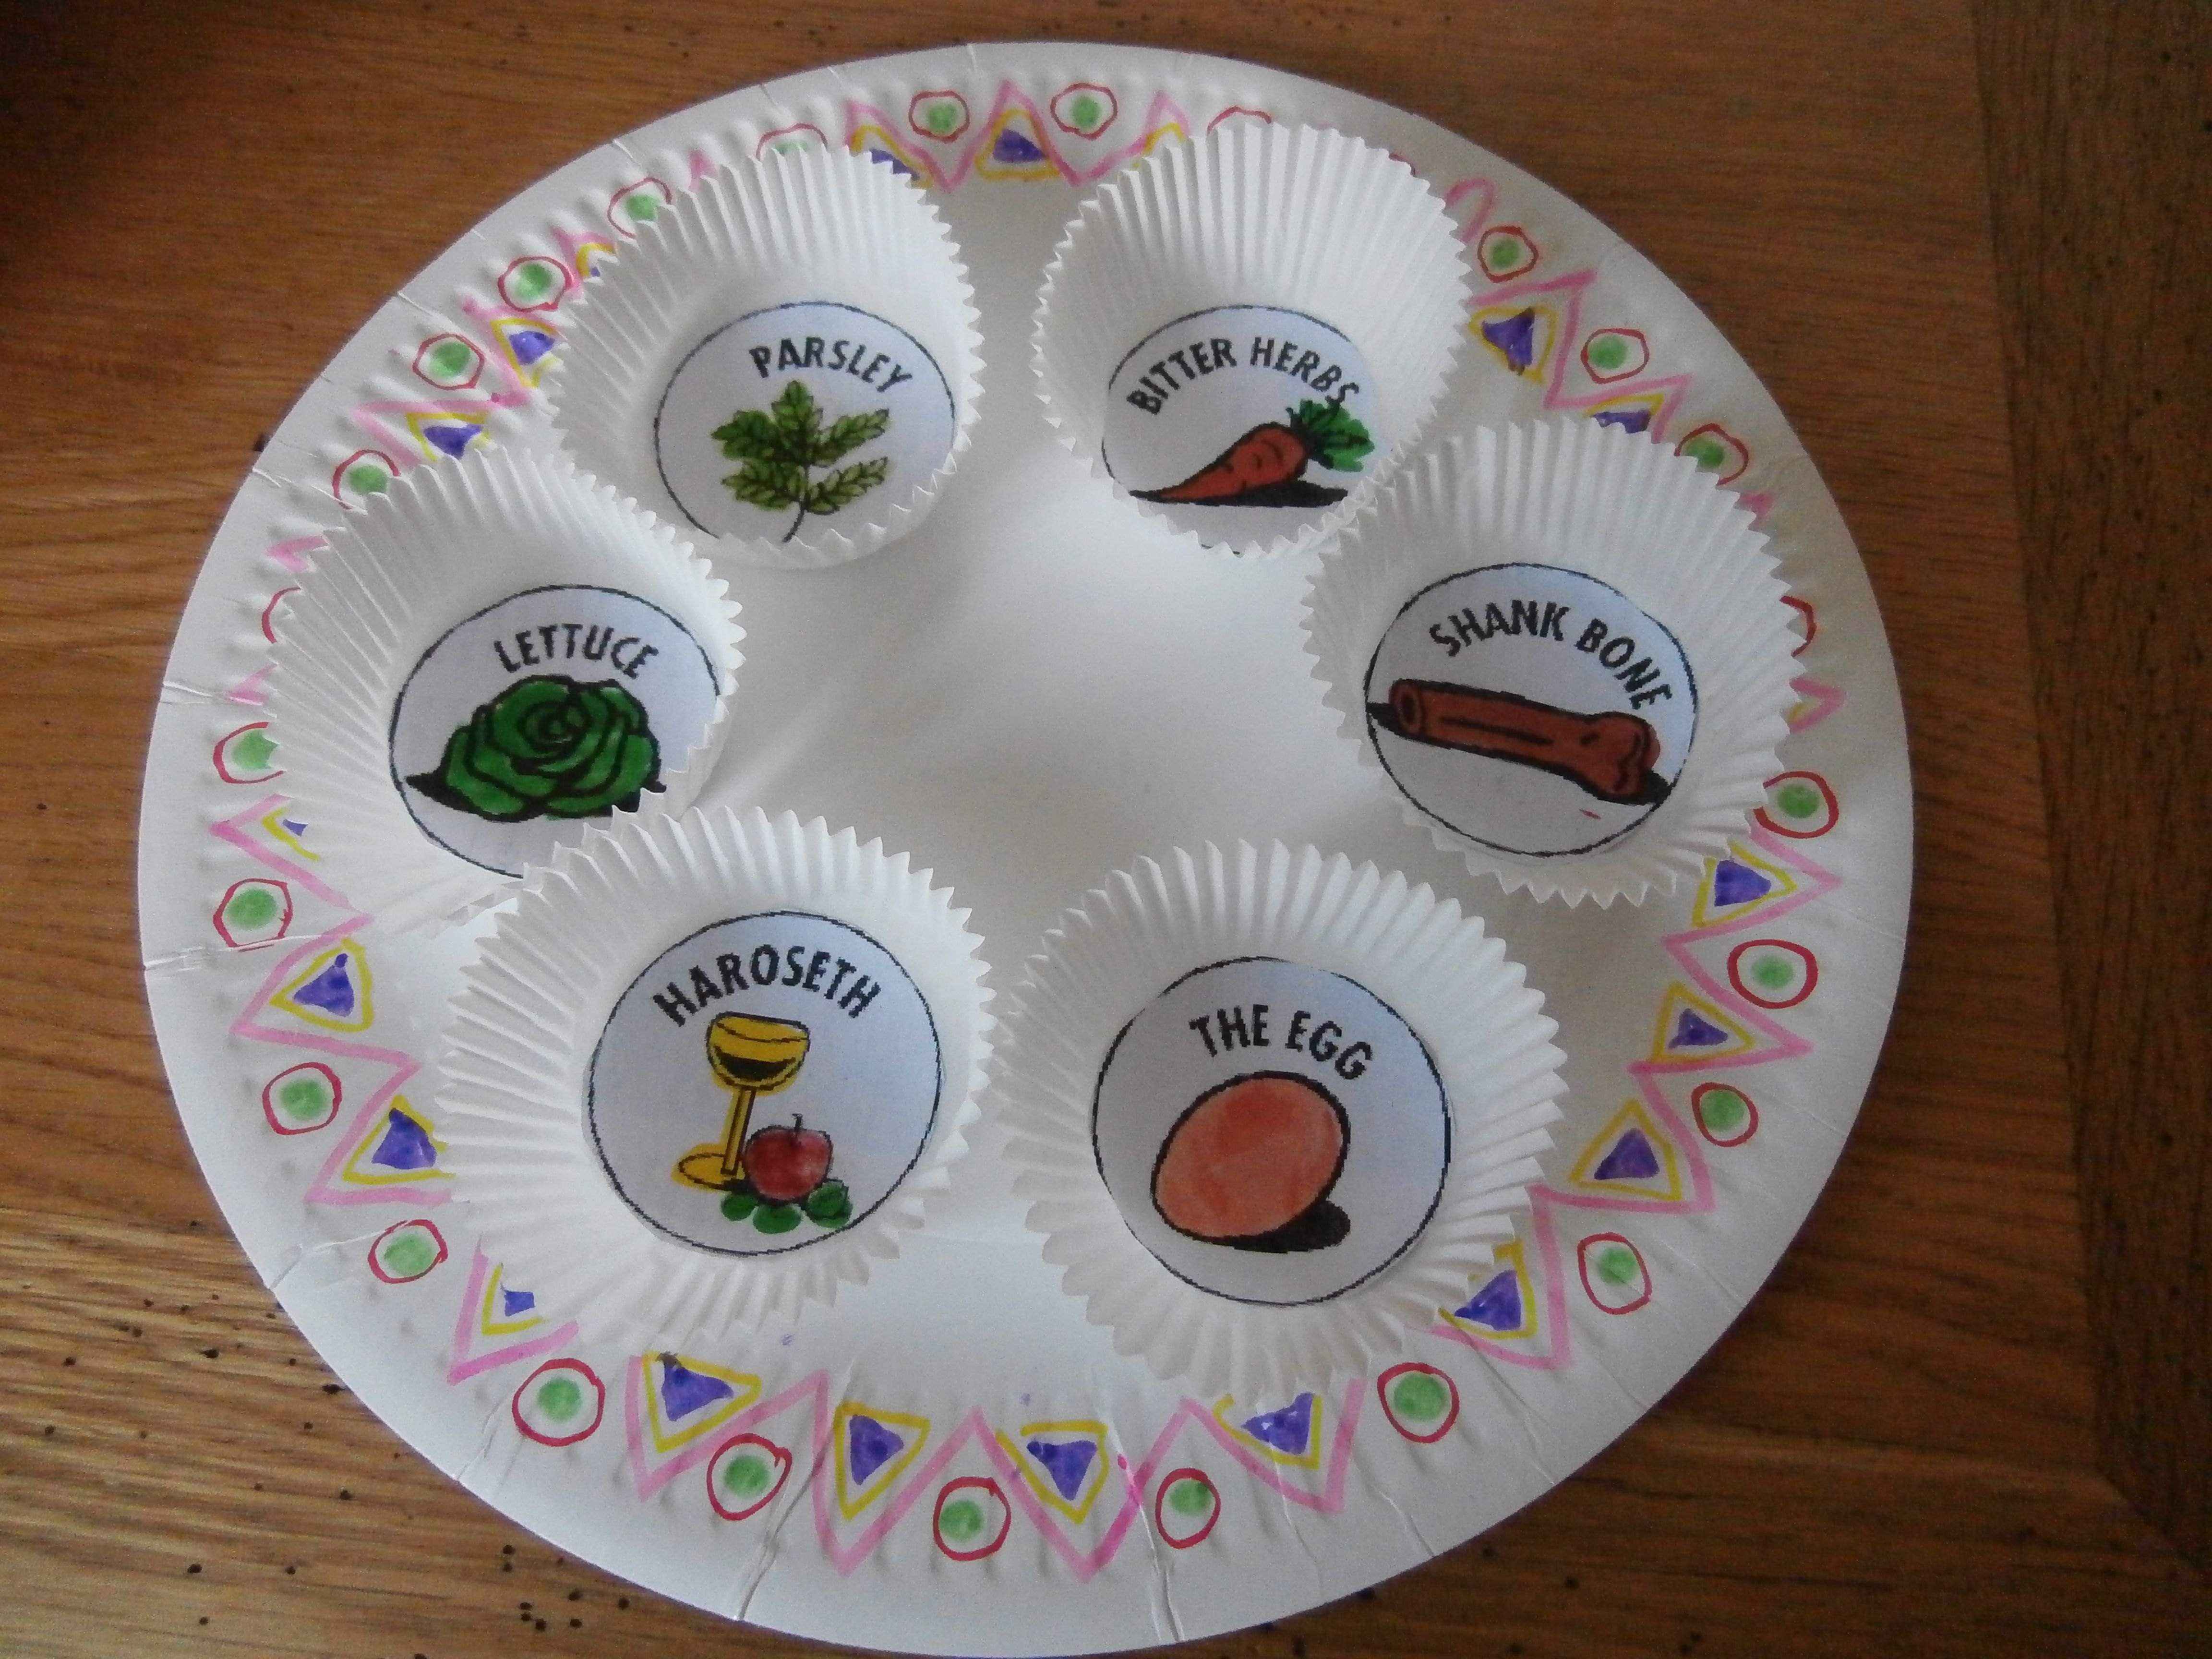 Passover craft seder plate httpbostonparentspaper in preparation for passover many families create their own symbolic seder plates and this crafting opportunity is a great way to get children involved buycottarizona